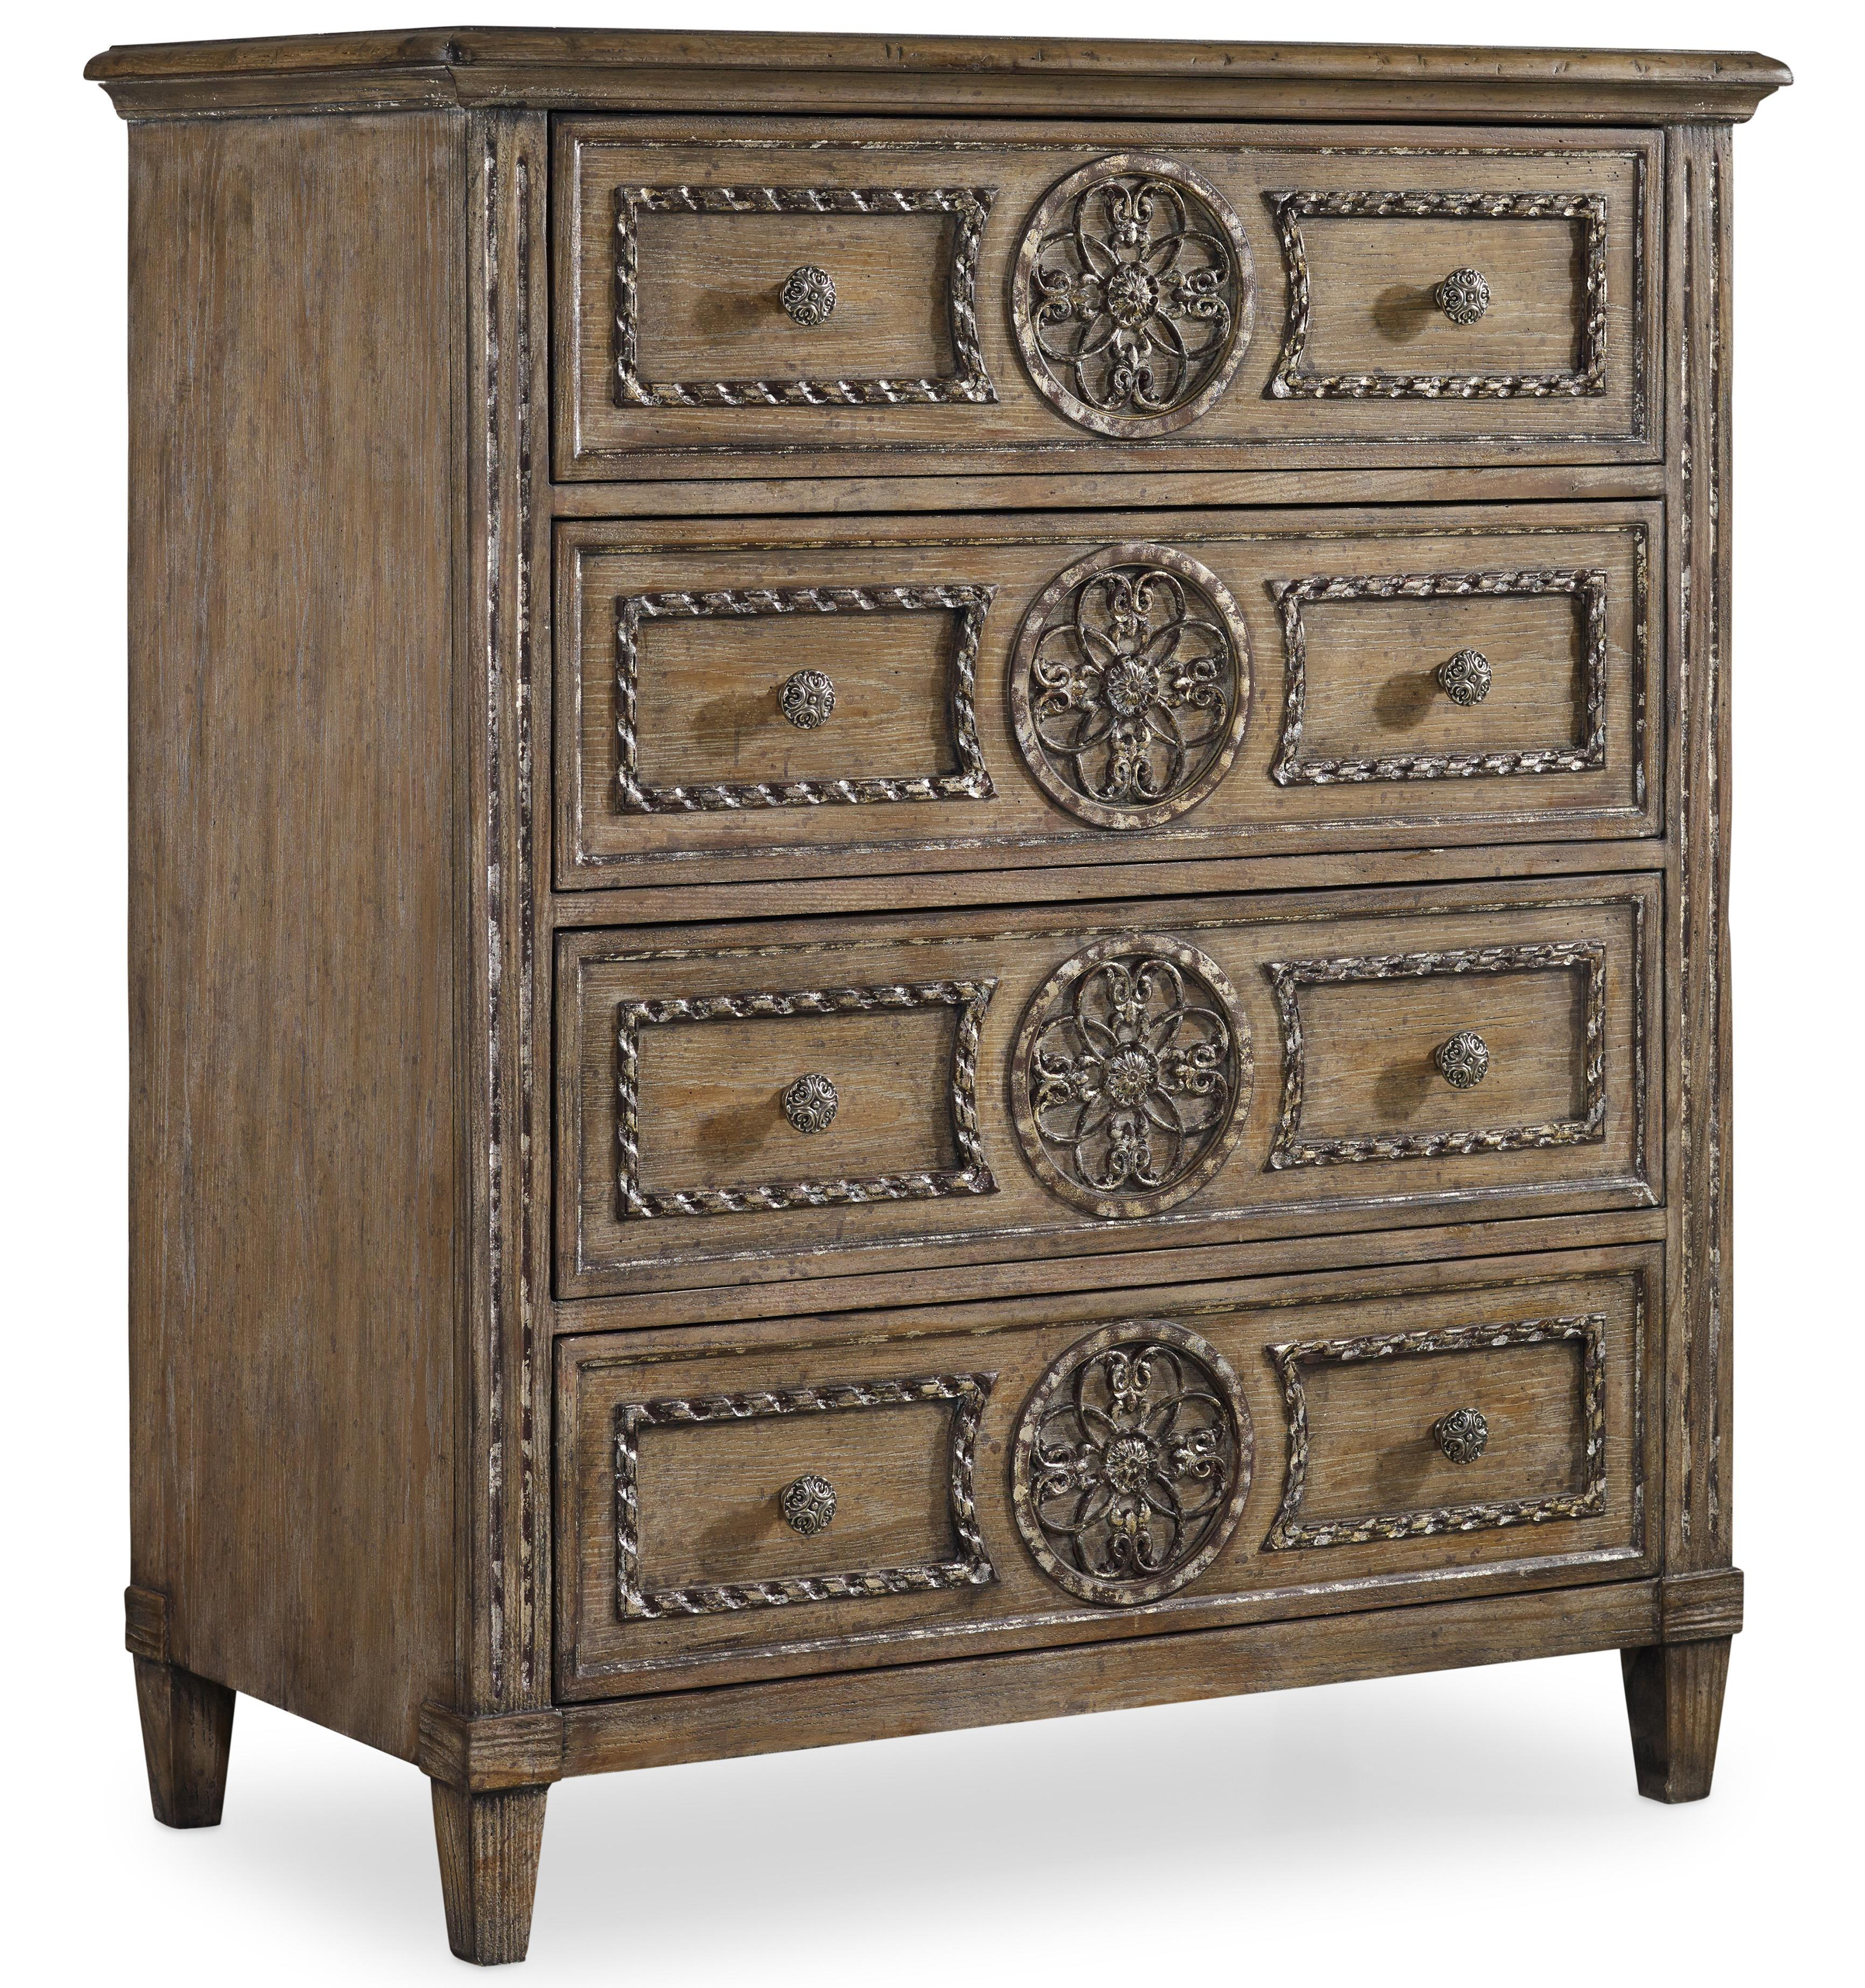 Hooker Furniture Solana Tall Chest - Item Number: 5491-90110